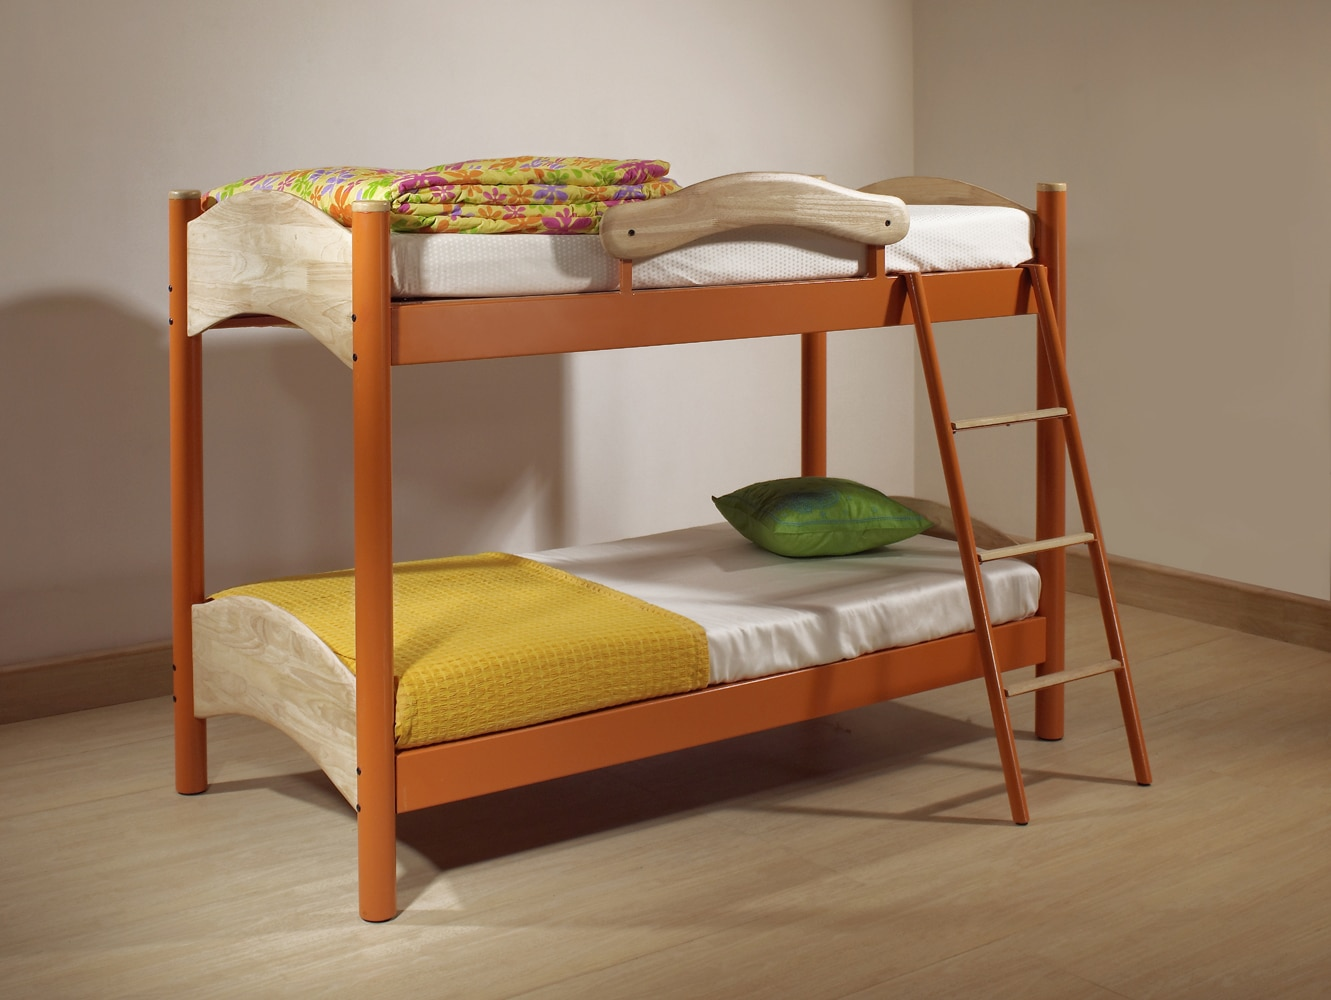 Bunk Beds - Adults Size